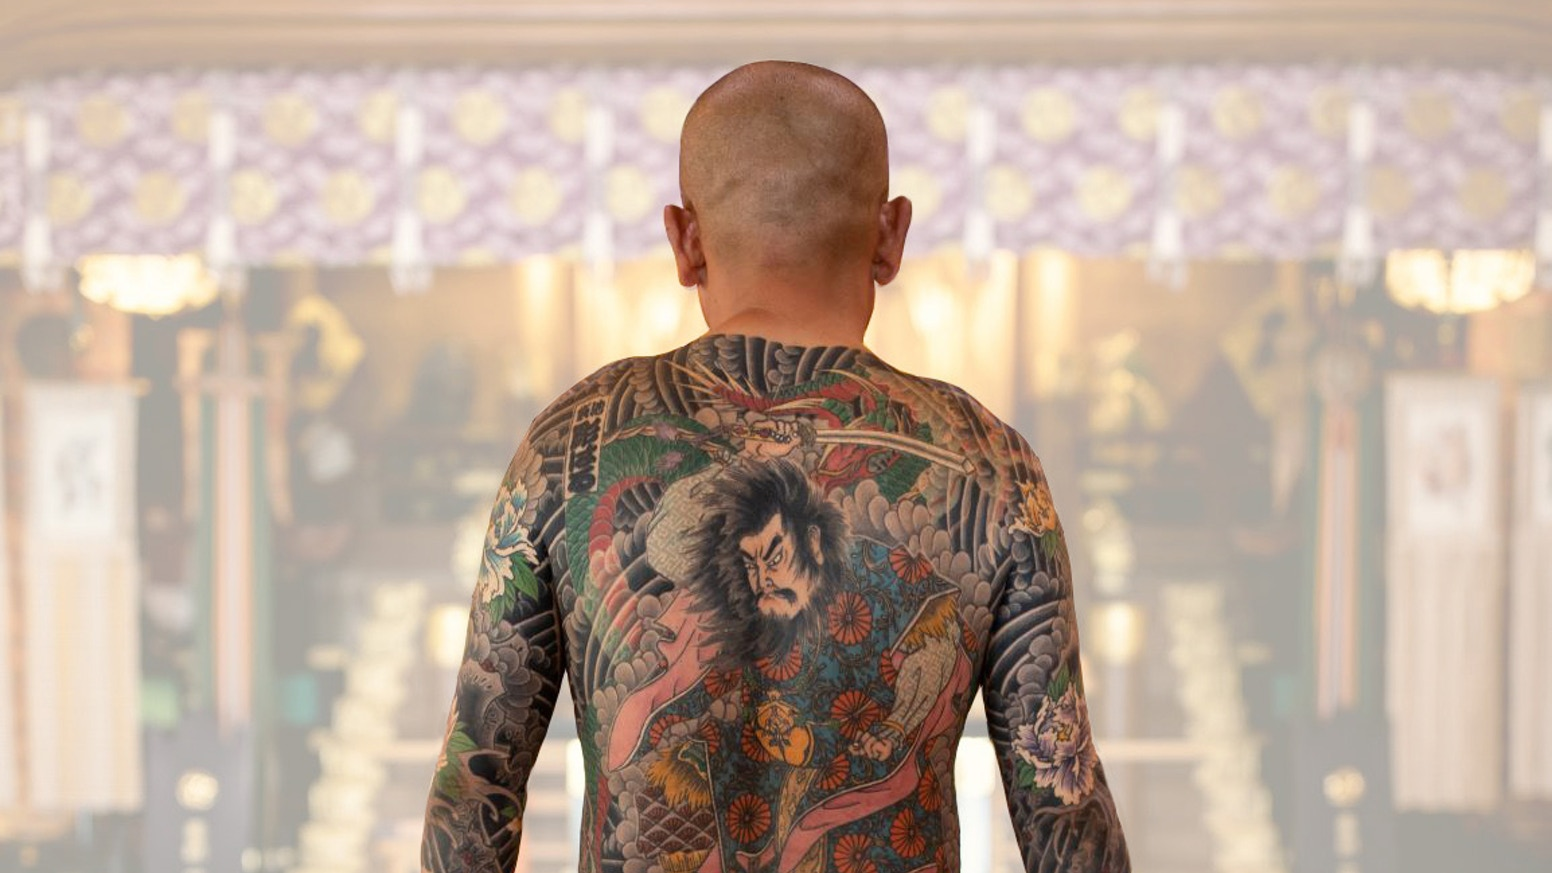 A short documentary film that challenges Japanese tattoo stereotypes by following a tattooed pilgrimage group to a holy mountain.